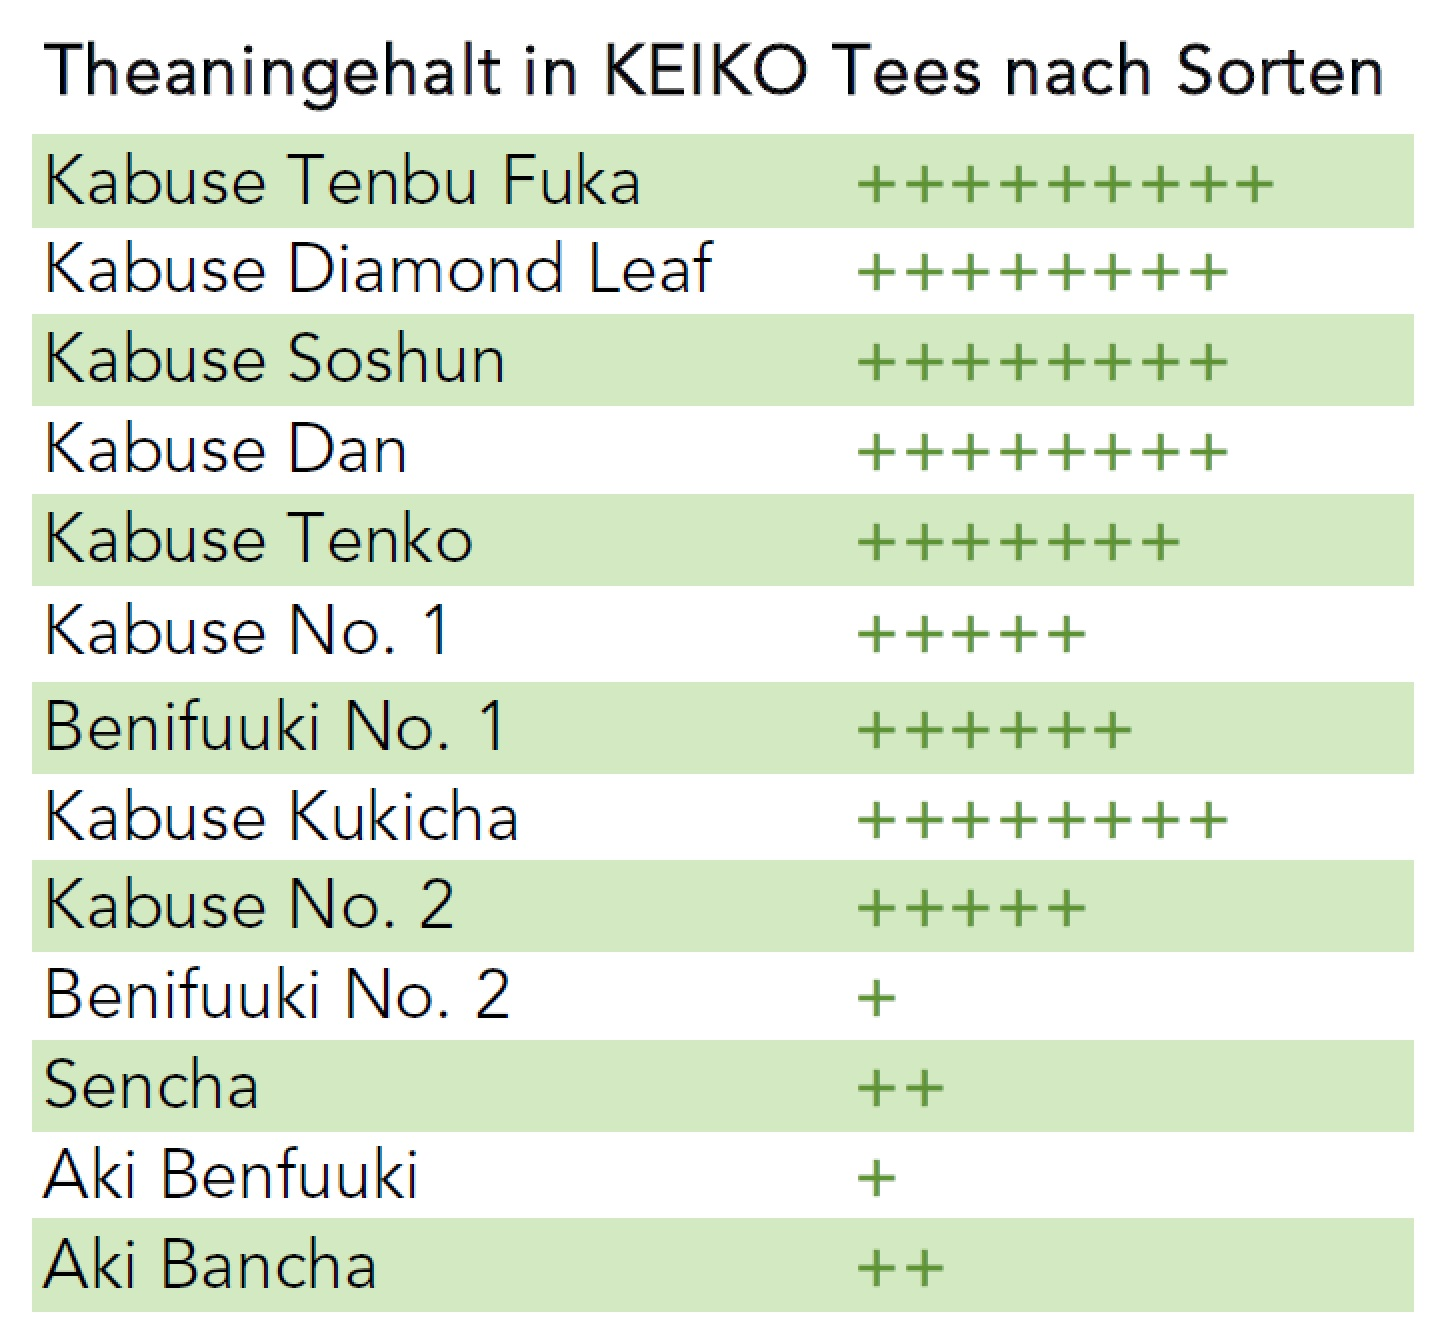 Theanine Content in KEIKO Teas